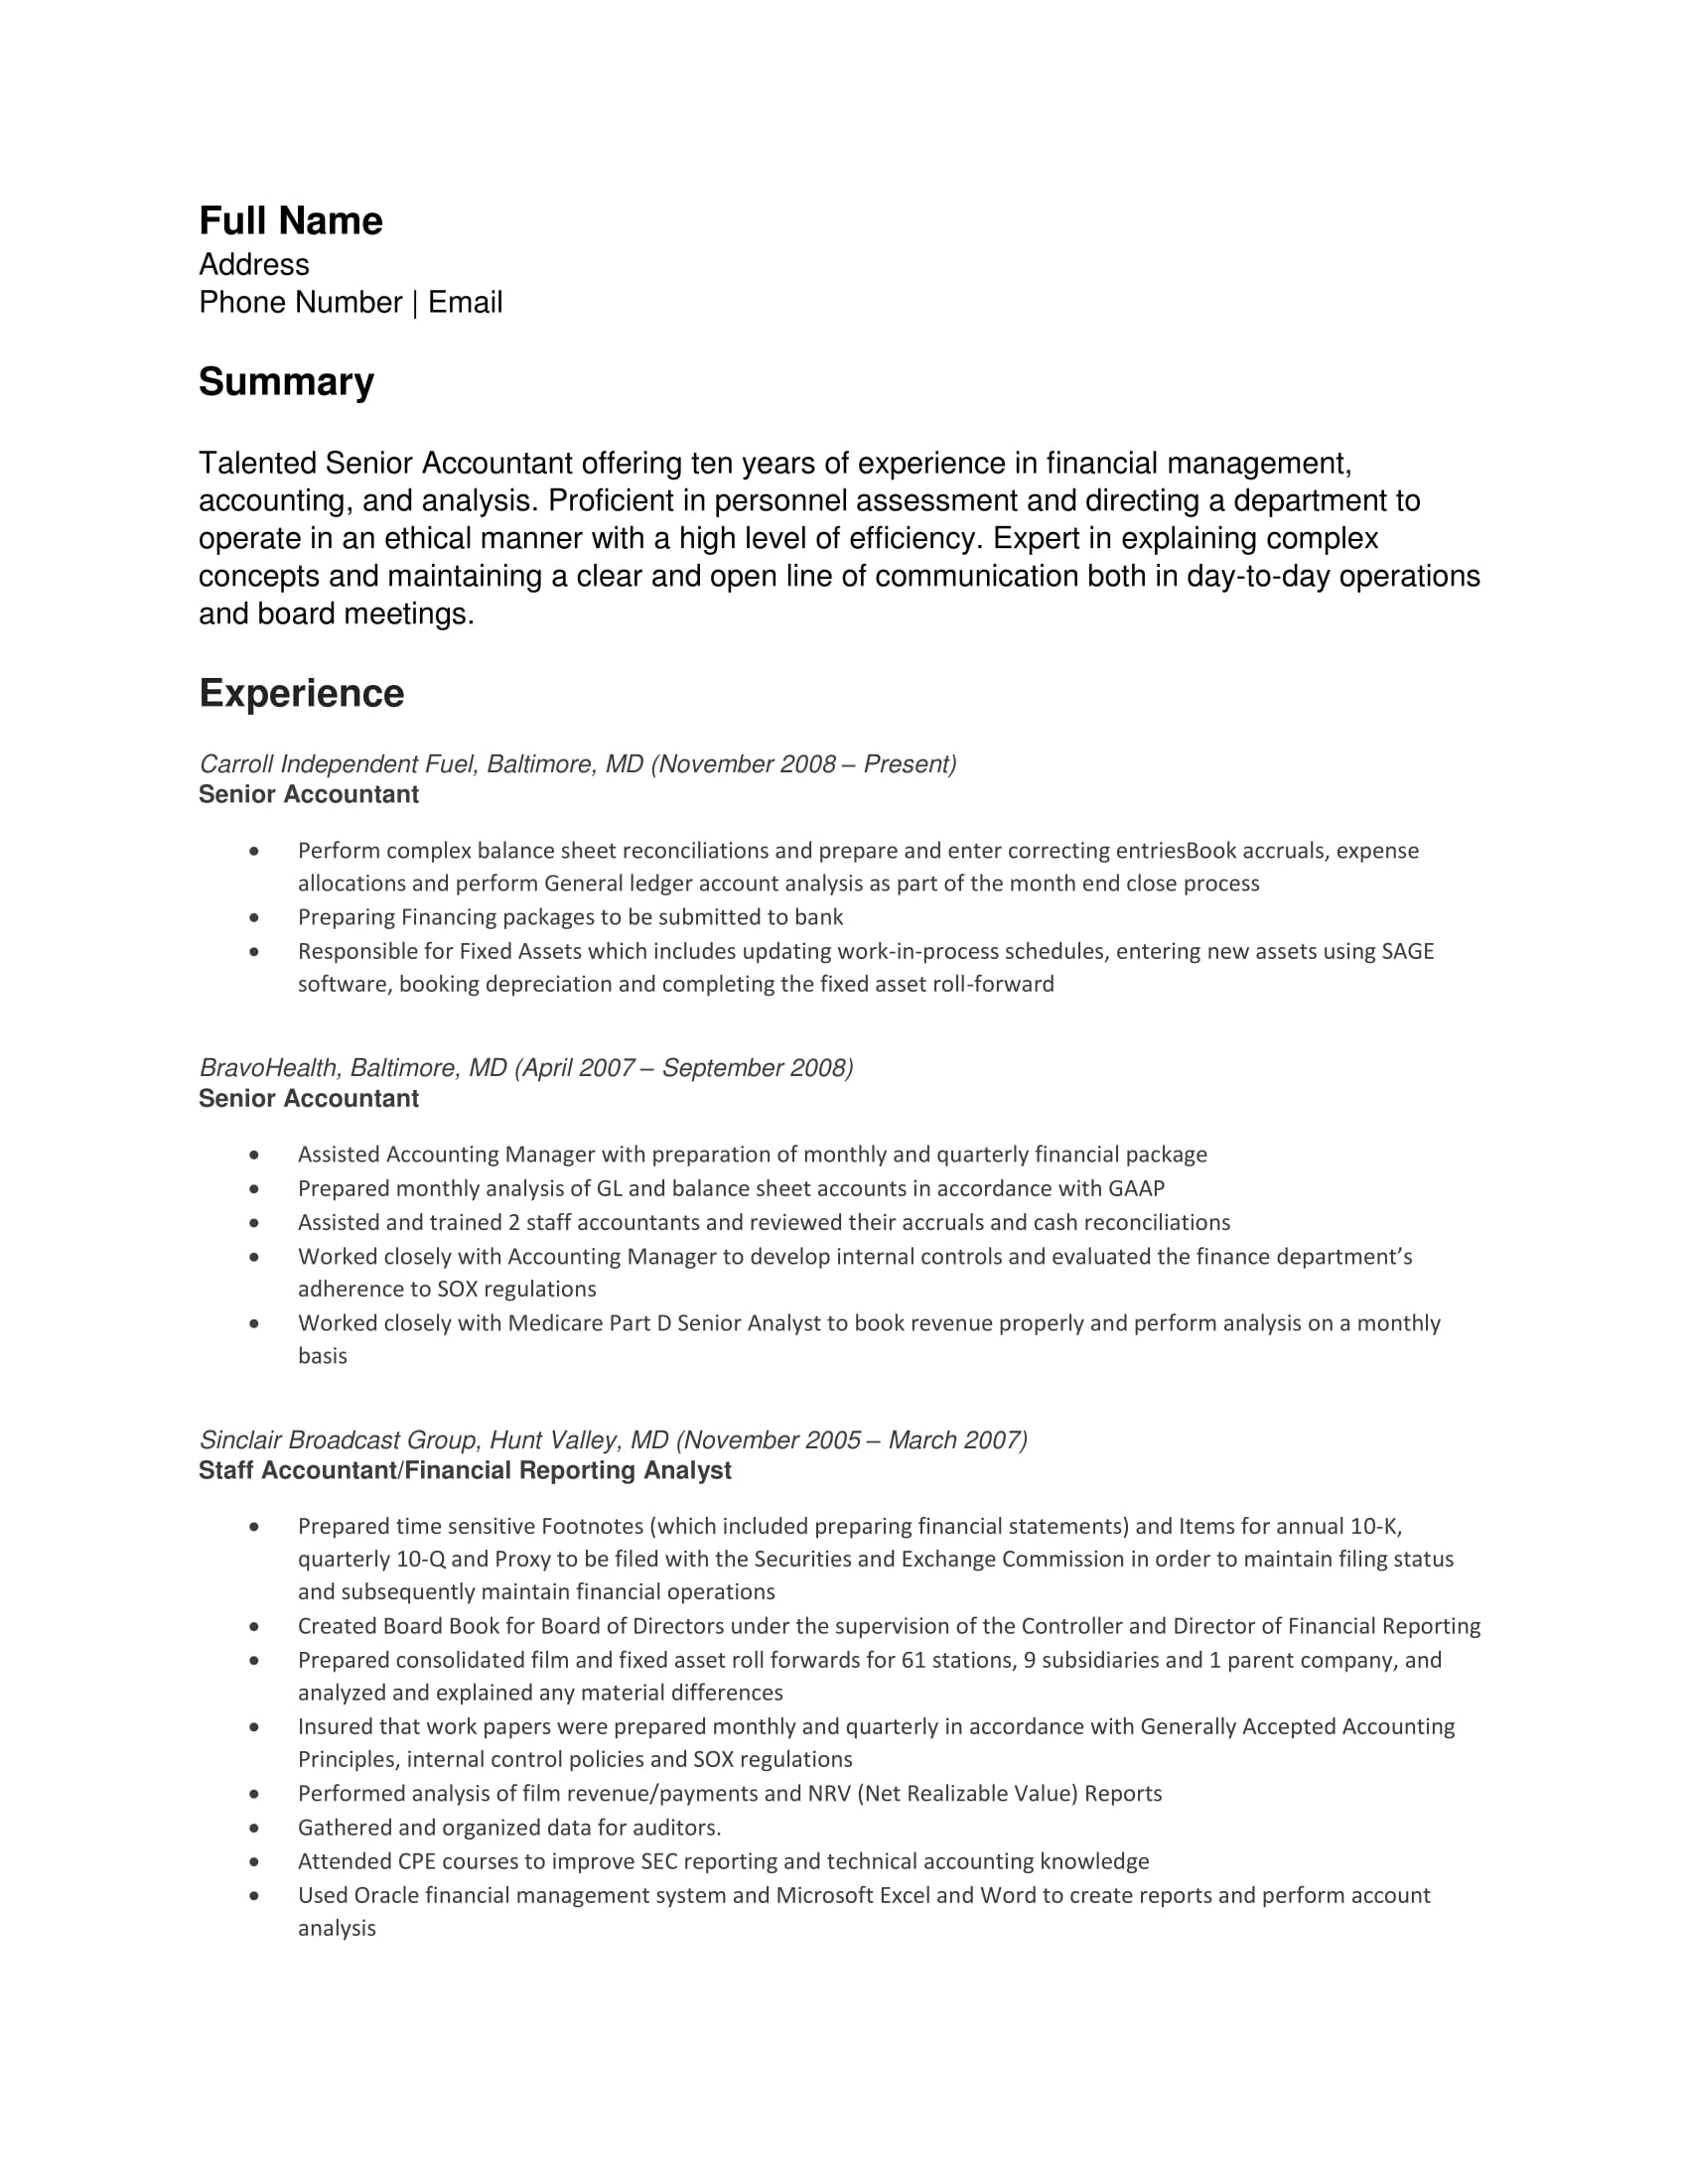 Senior Accountant Resume Example:  Senior Accountant Resume